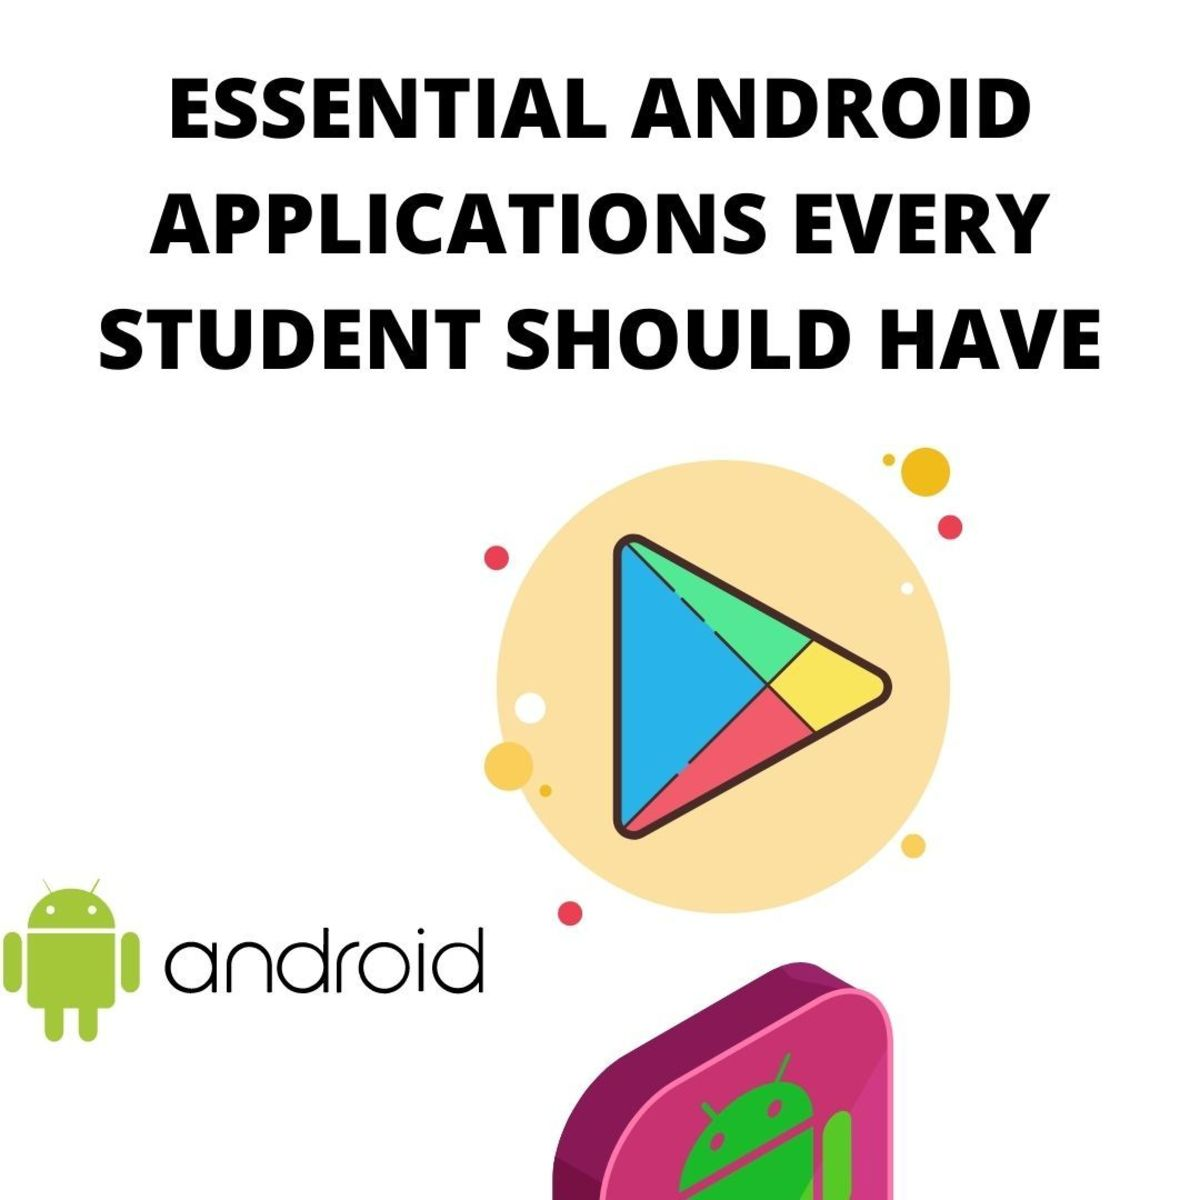 5-essential-android-applications-every-student-should-have